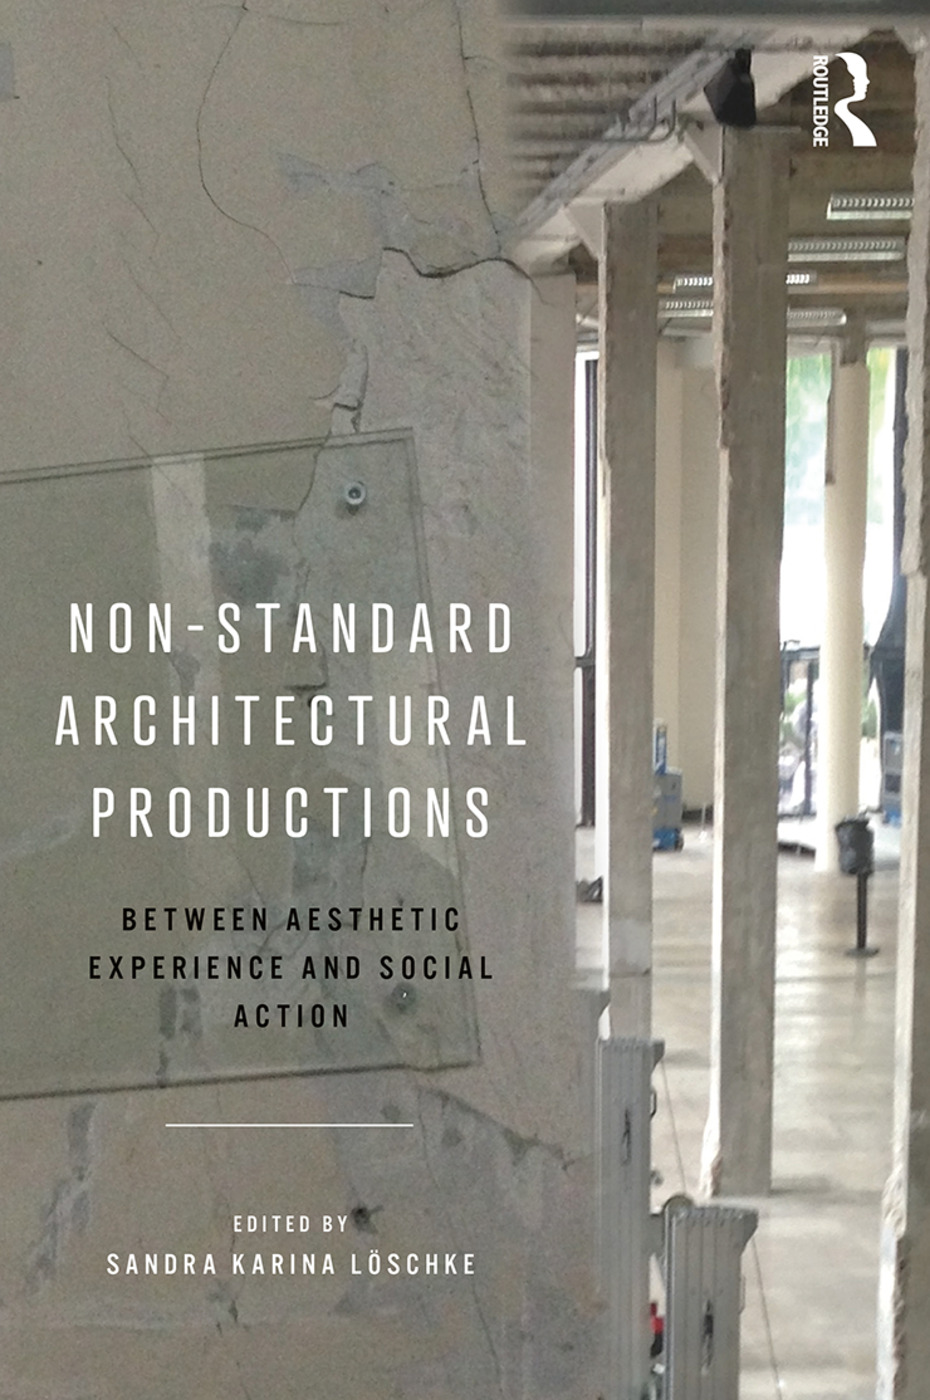 Non-Standard Architectural Productions: Between Aesthetic Experience and Social Action book cover